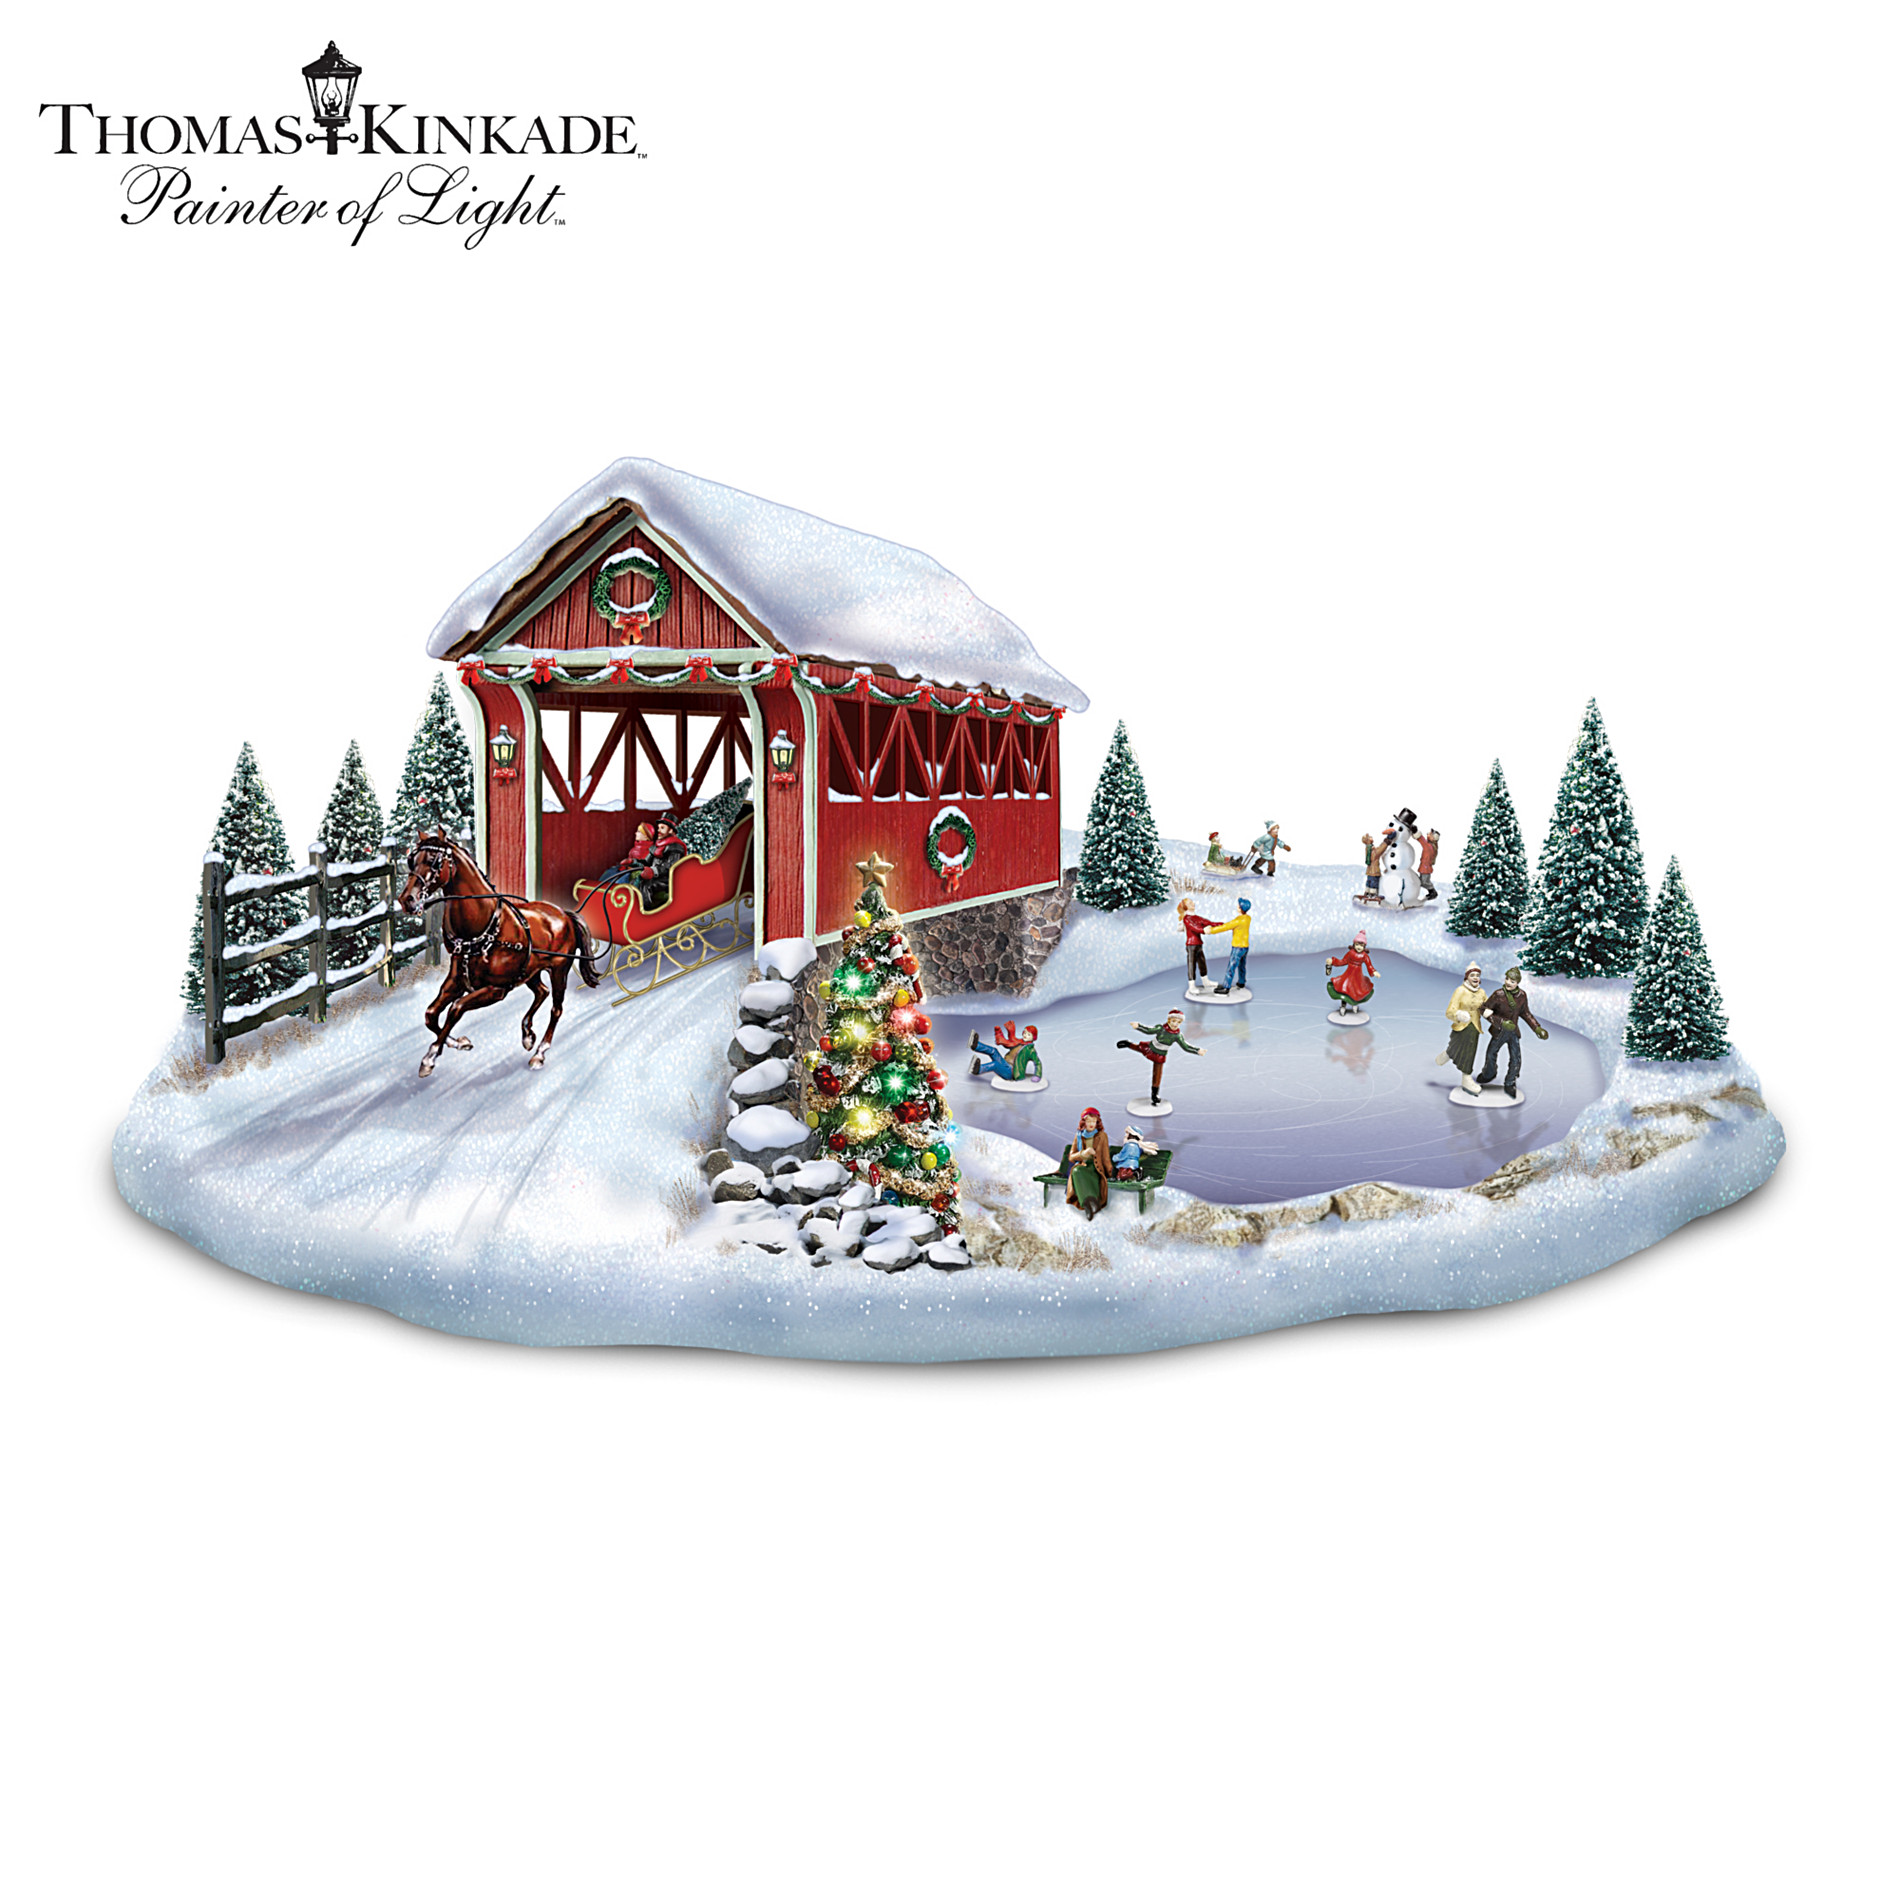 Hawthorne Village Sculpture Set: Thomas Kinkade Holiday Enchantment Village Sculpture Set at Sears.com